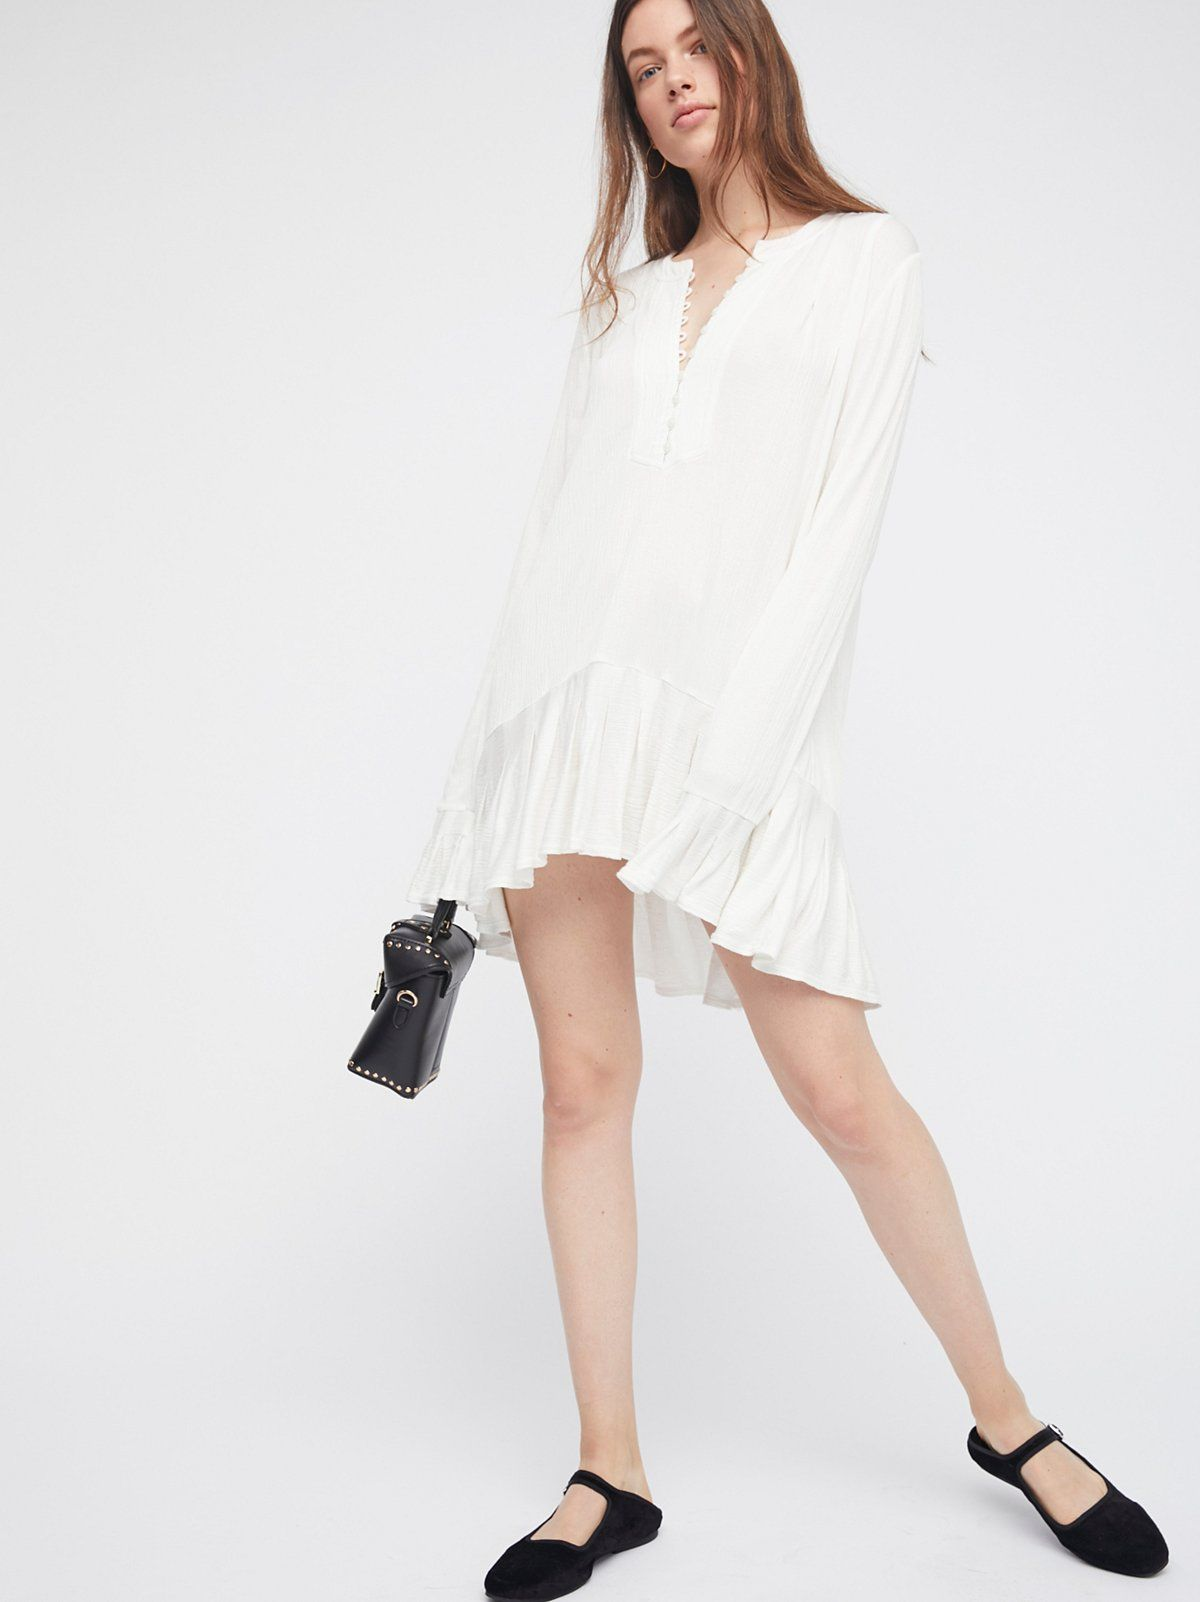 Your Girl Tunic   Soft and stretchy tunic in a crinkly fabrication featuring front button closures and a ruffled hem and sleeves cuffs.    * Semi-sheer